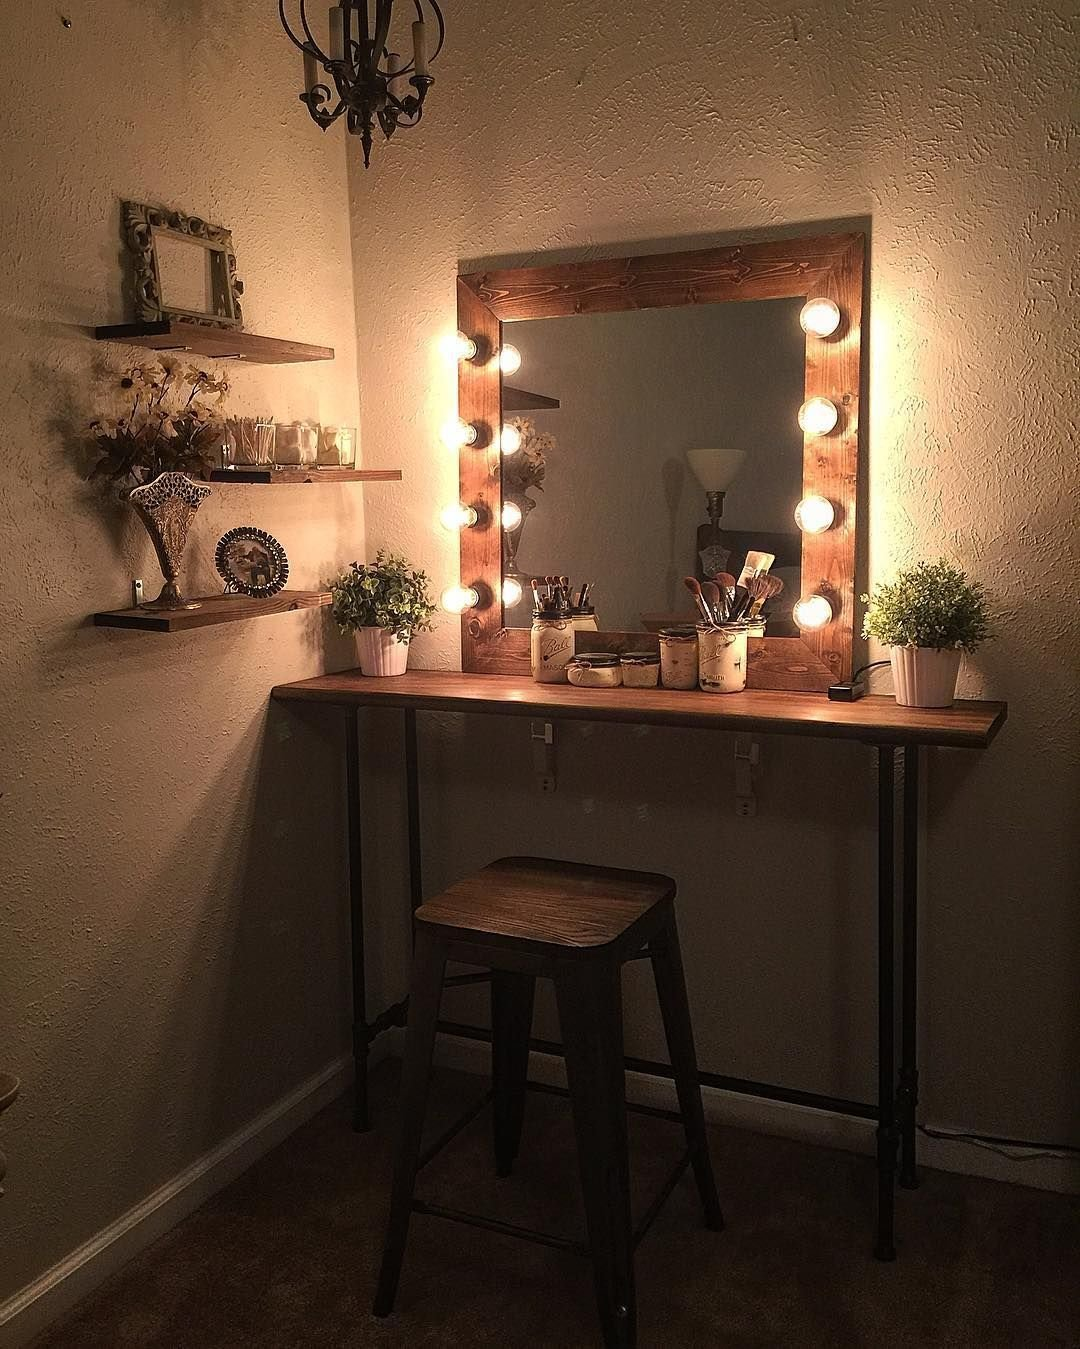 Best Cute Easy Simple Diy Wood Rustic Vanity Mirror With With Pictures